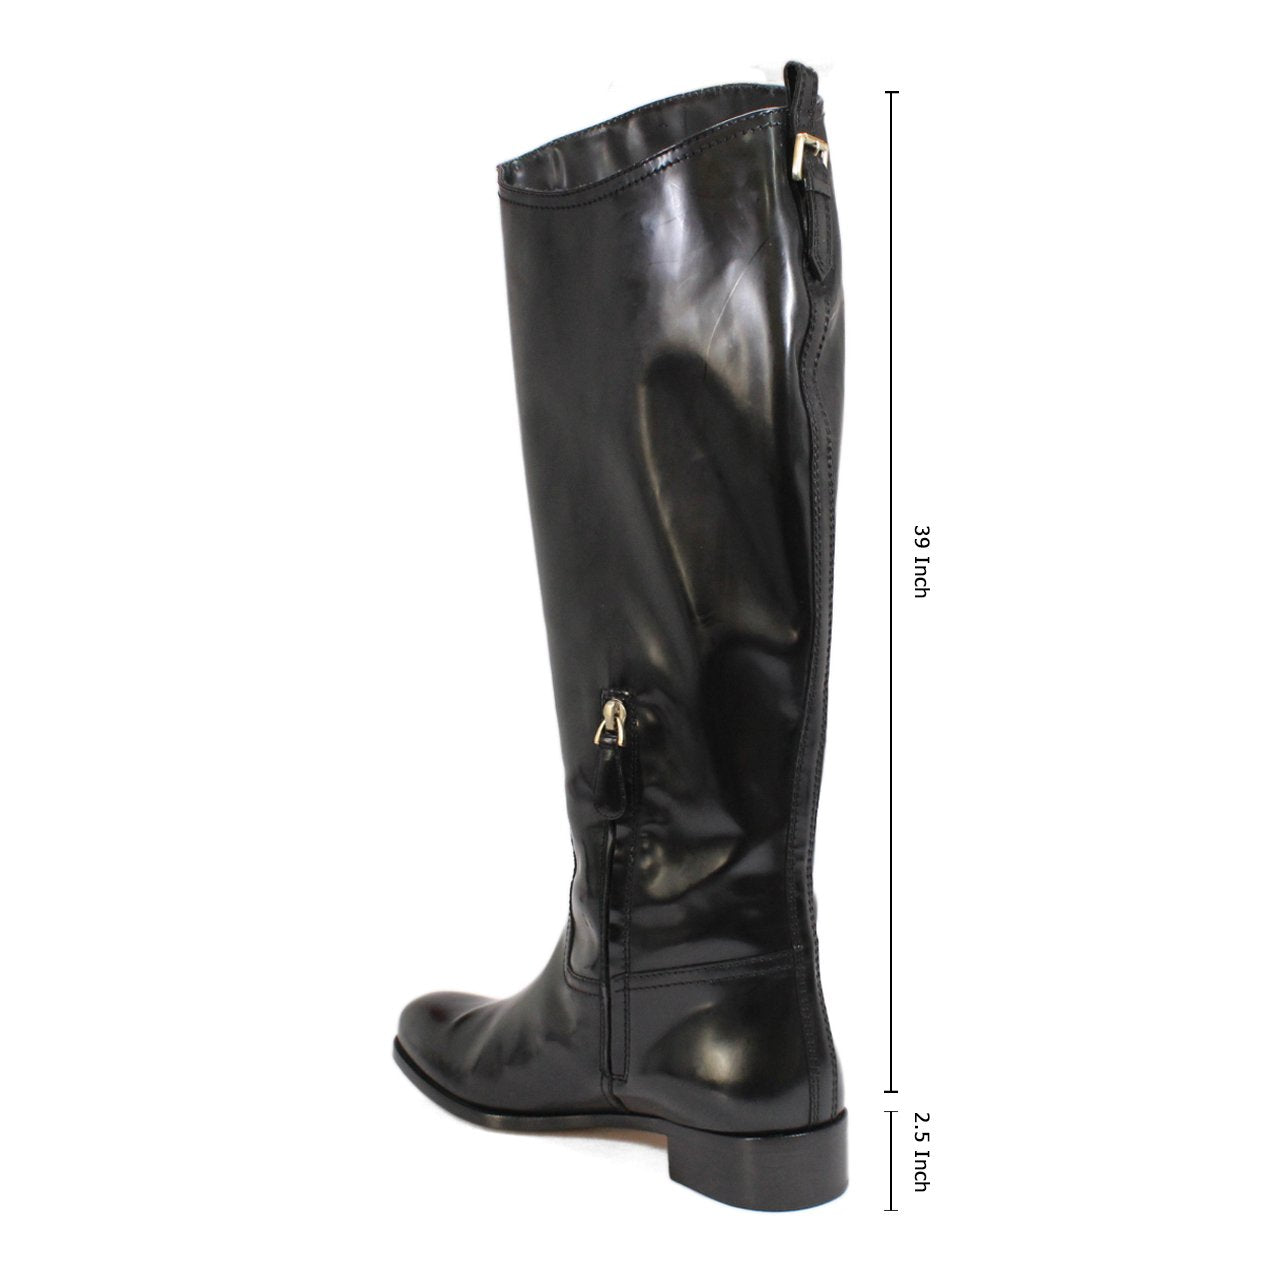 Bally Elenora Women's Knee-High Derby Riding Boots